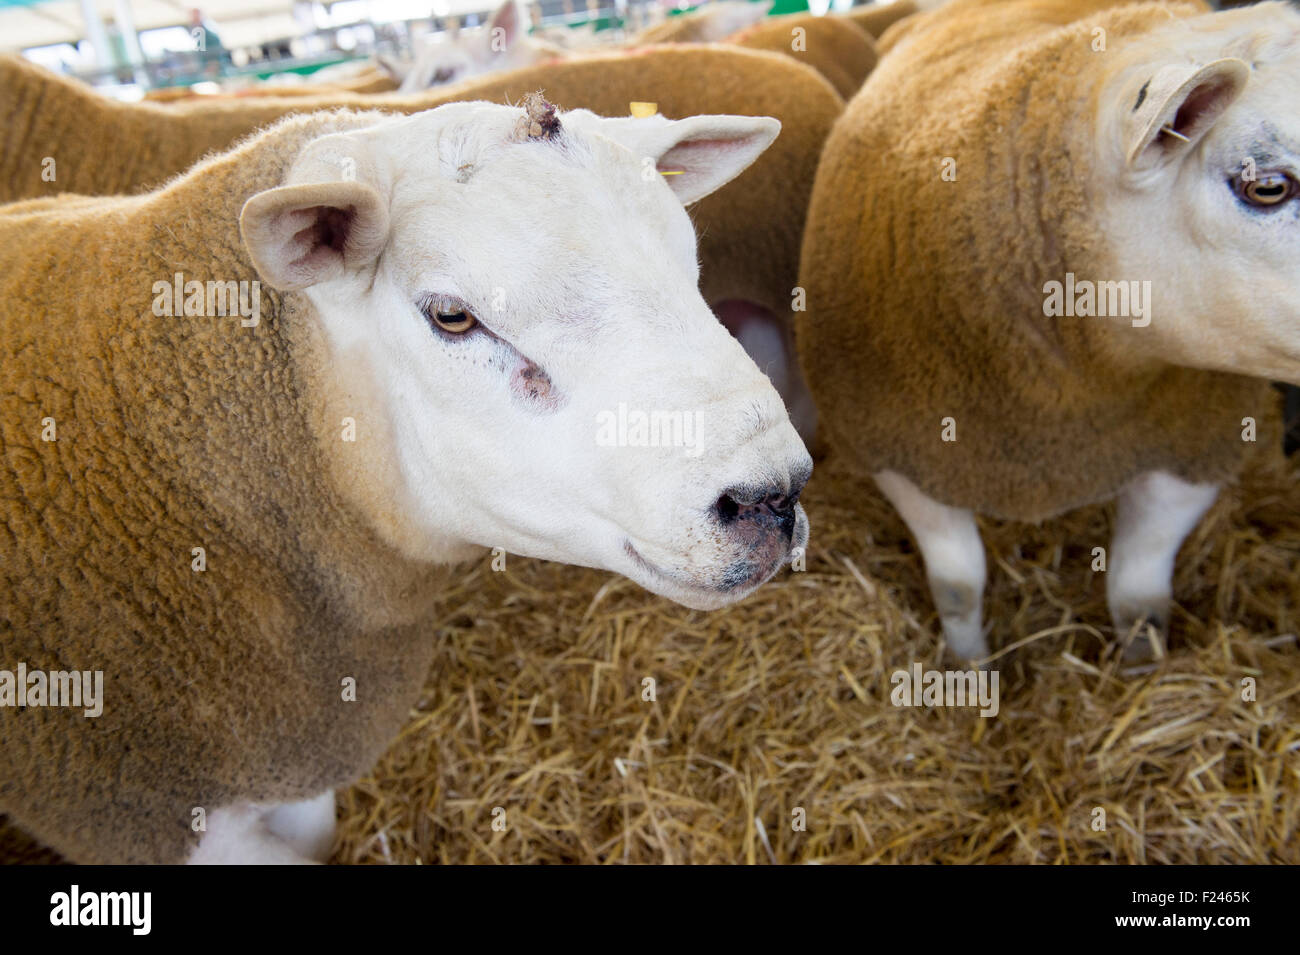 ce6cf6a8 2002 2007 Stock Photos & 2002 2007 Stock Images - Page 3 - Alamy